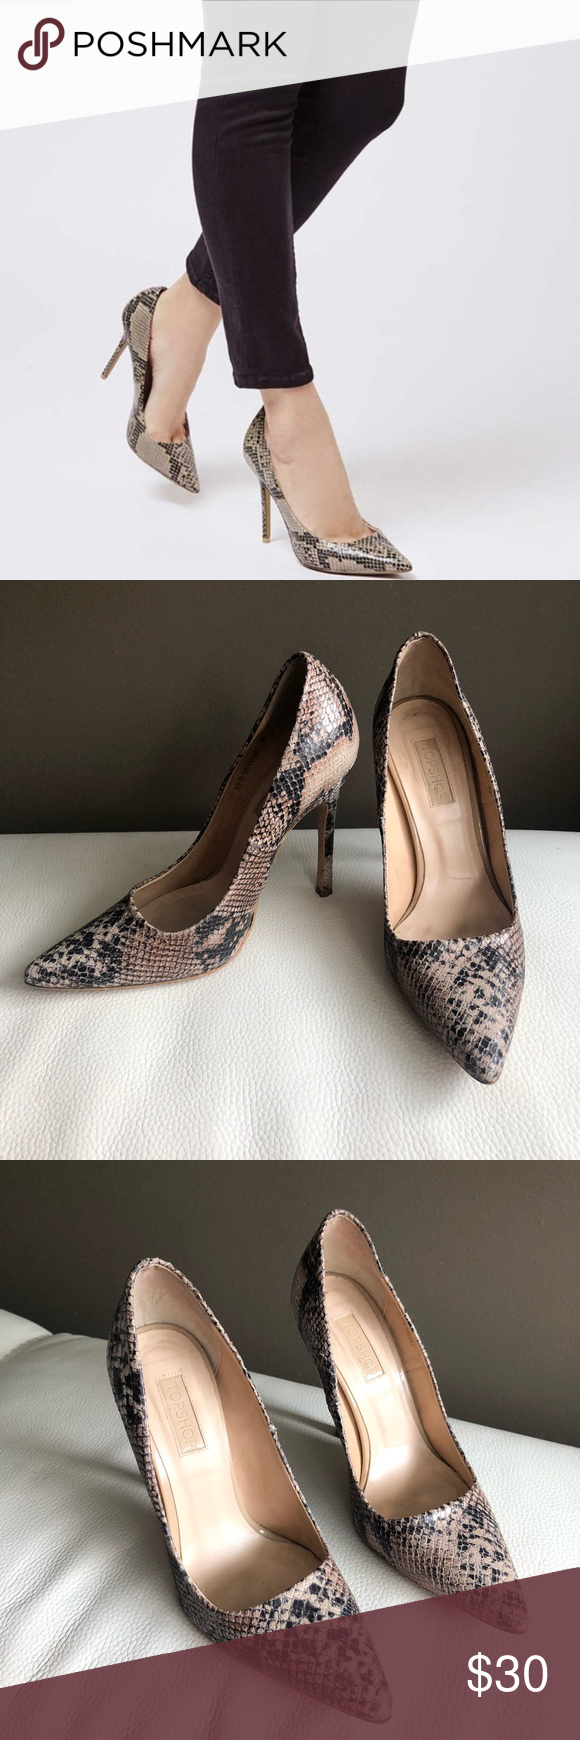 """ab957db12653 ✨Topshop • Pointed Toe Snakeskin Heels   Stiletto✨ H.O.T. stiletto Topshop  snake skin heels. Worn max 2-3 times Heels  4.5"""" European size 37 - US size  7 A ..."""